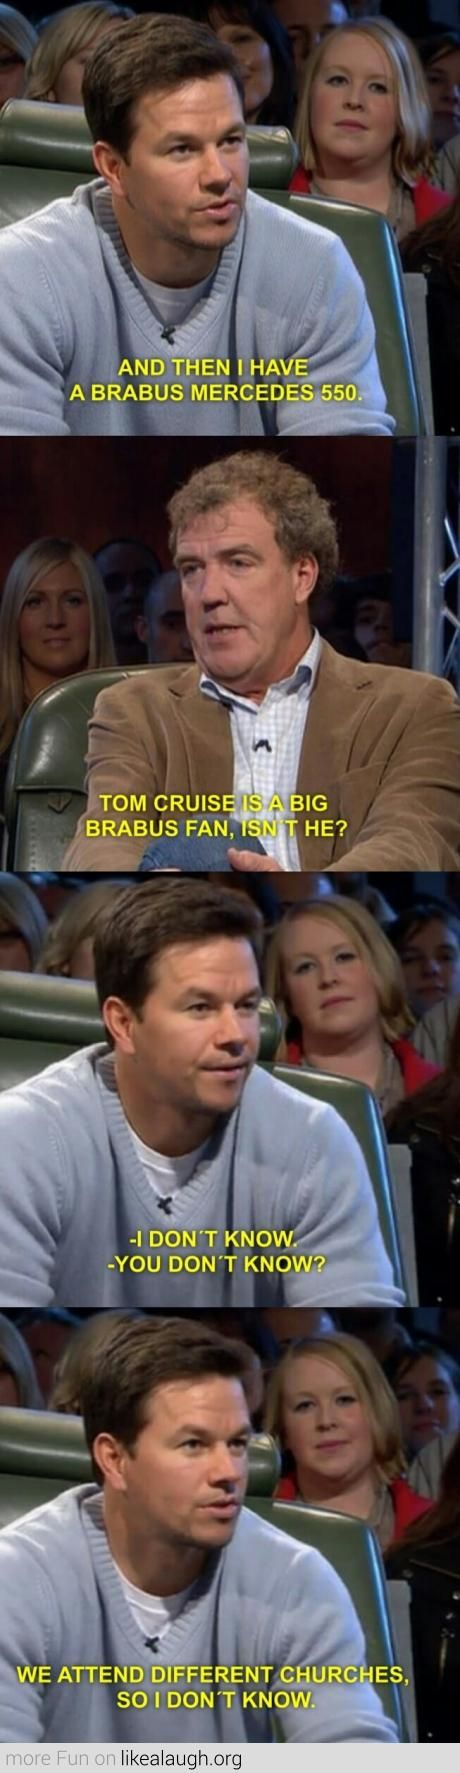 Mark Wahlberg on Tom Cruise <--- I'm not a Mark Wahlberg fan but this is a fantastic response to being lumped in with Crazy Cruise.